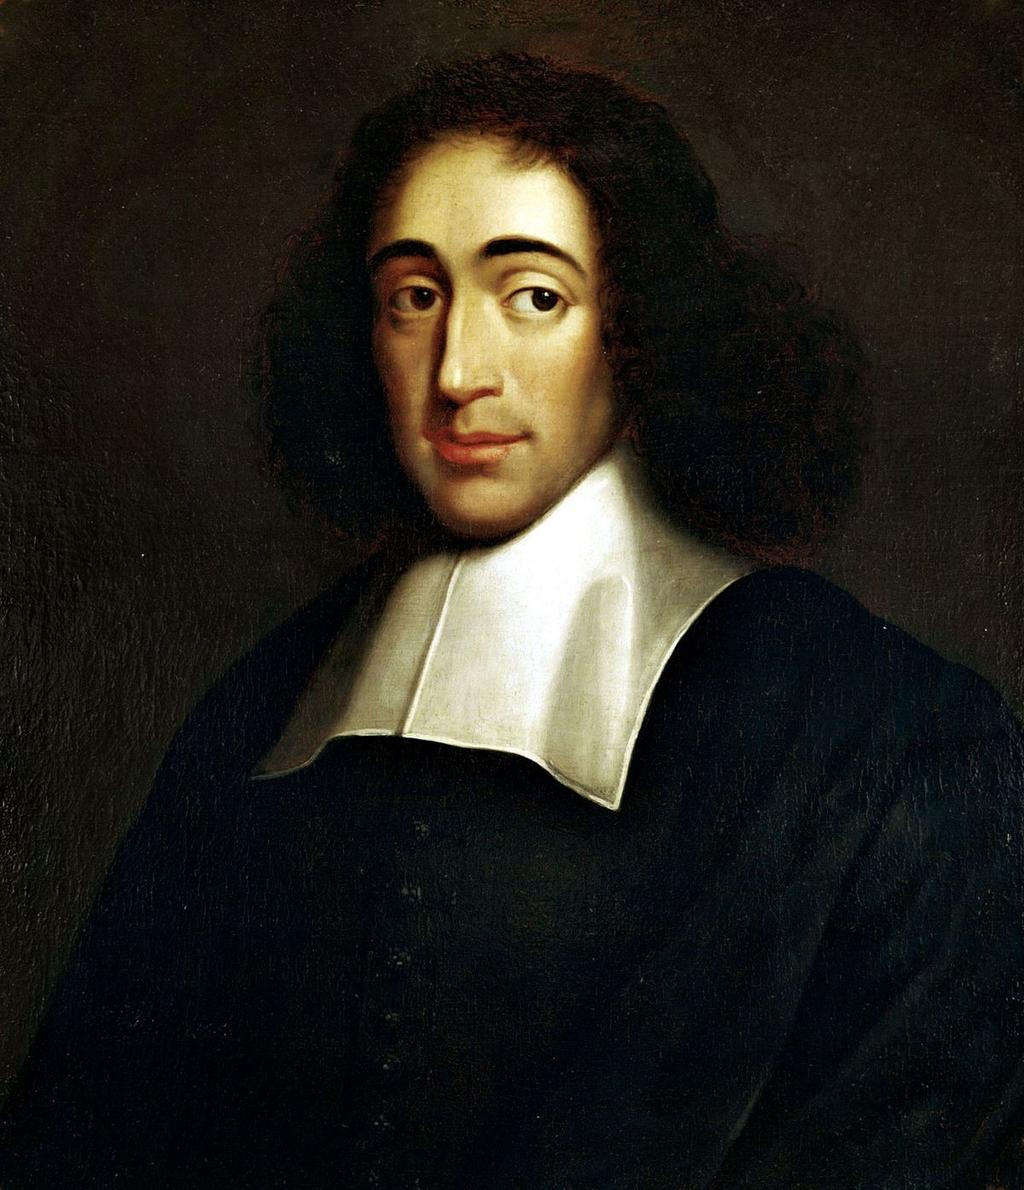 view known as skepticism. Baruch Spinoza Spinoza is a Dutch Jewish philosopher who believed that the mind and body are united.